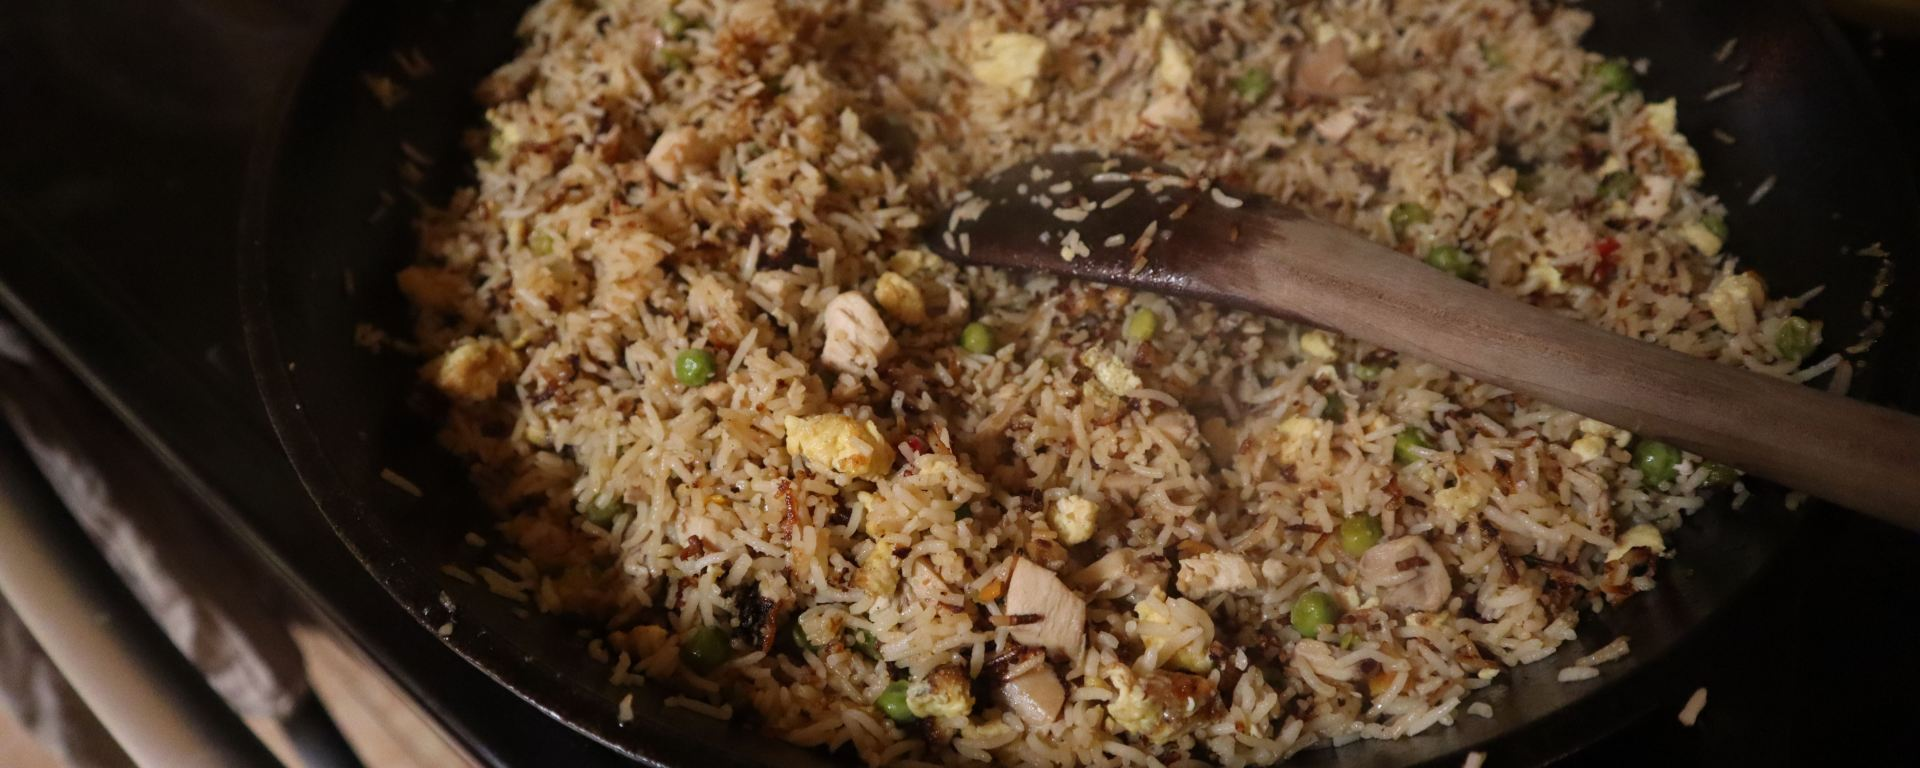 Freezer Meal Fried Rice